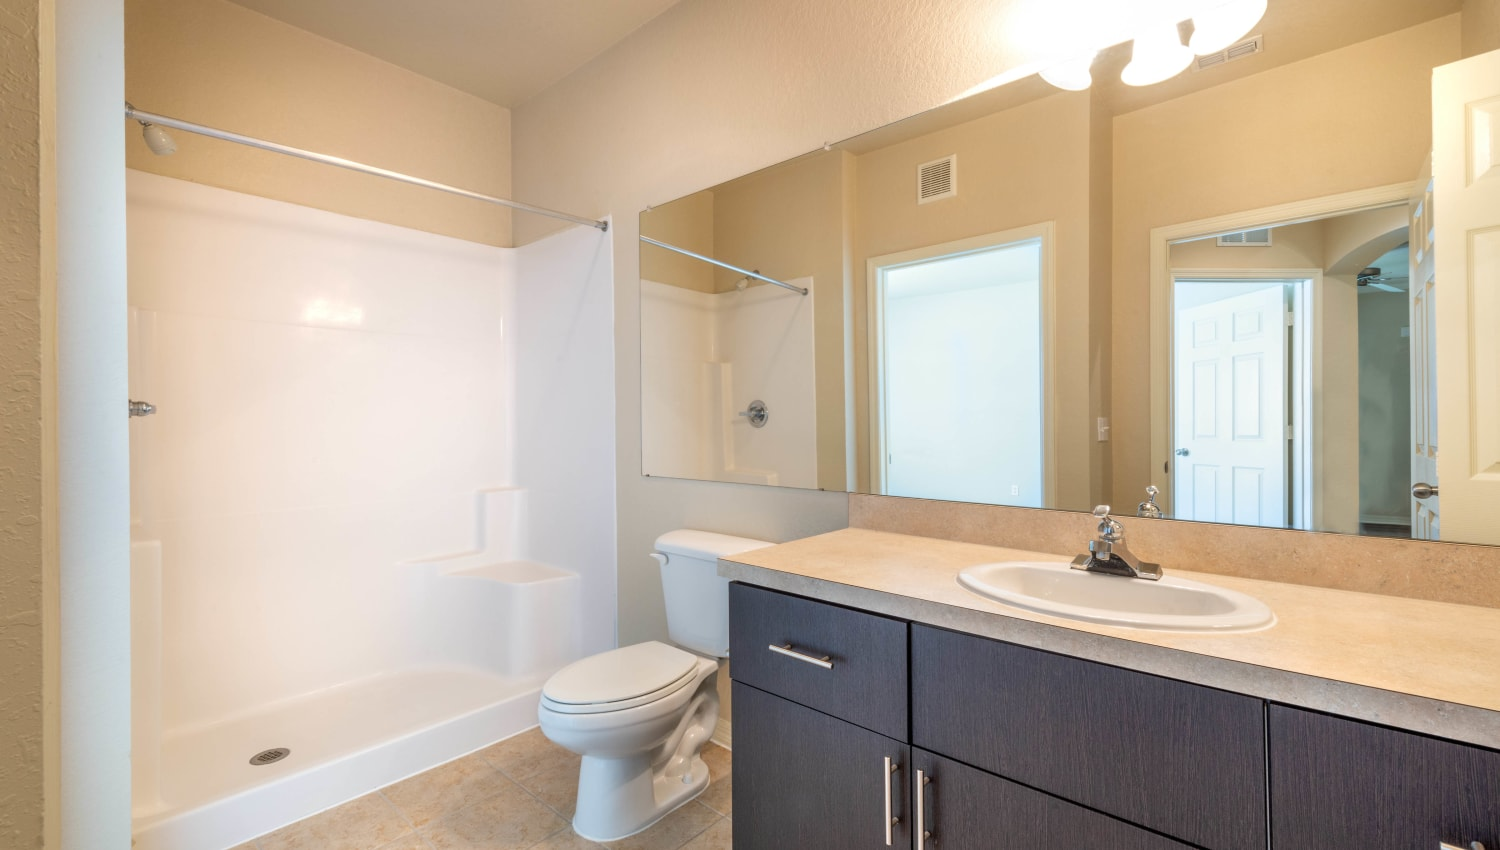 Tiled shower and granite countertop in a model apartment's bathroom at Mirador & Stovall at River City in Jacksonville, Florida